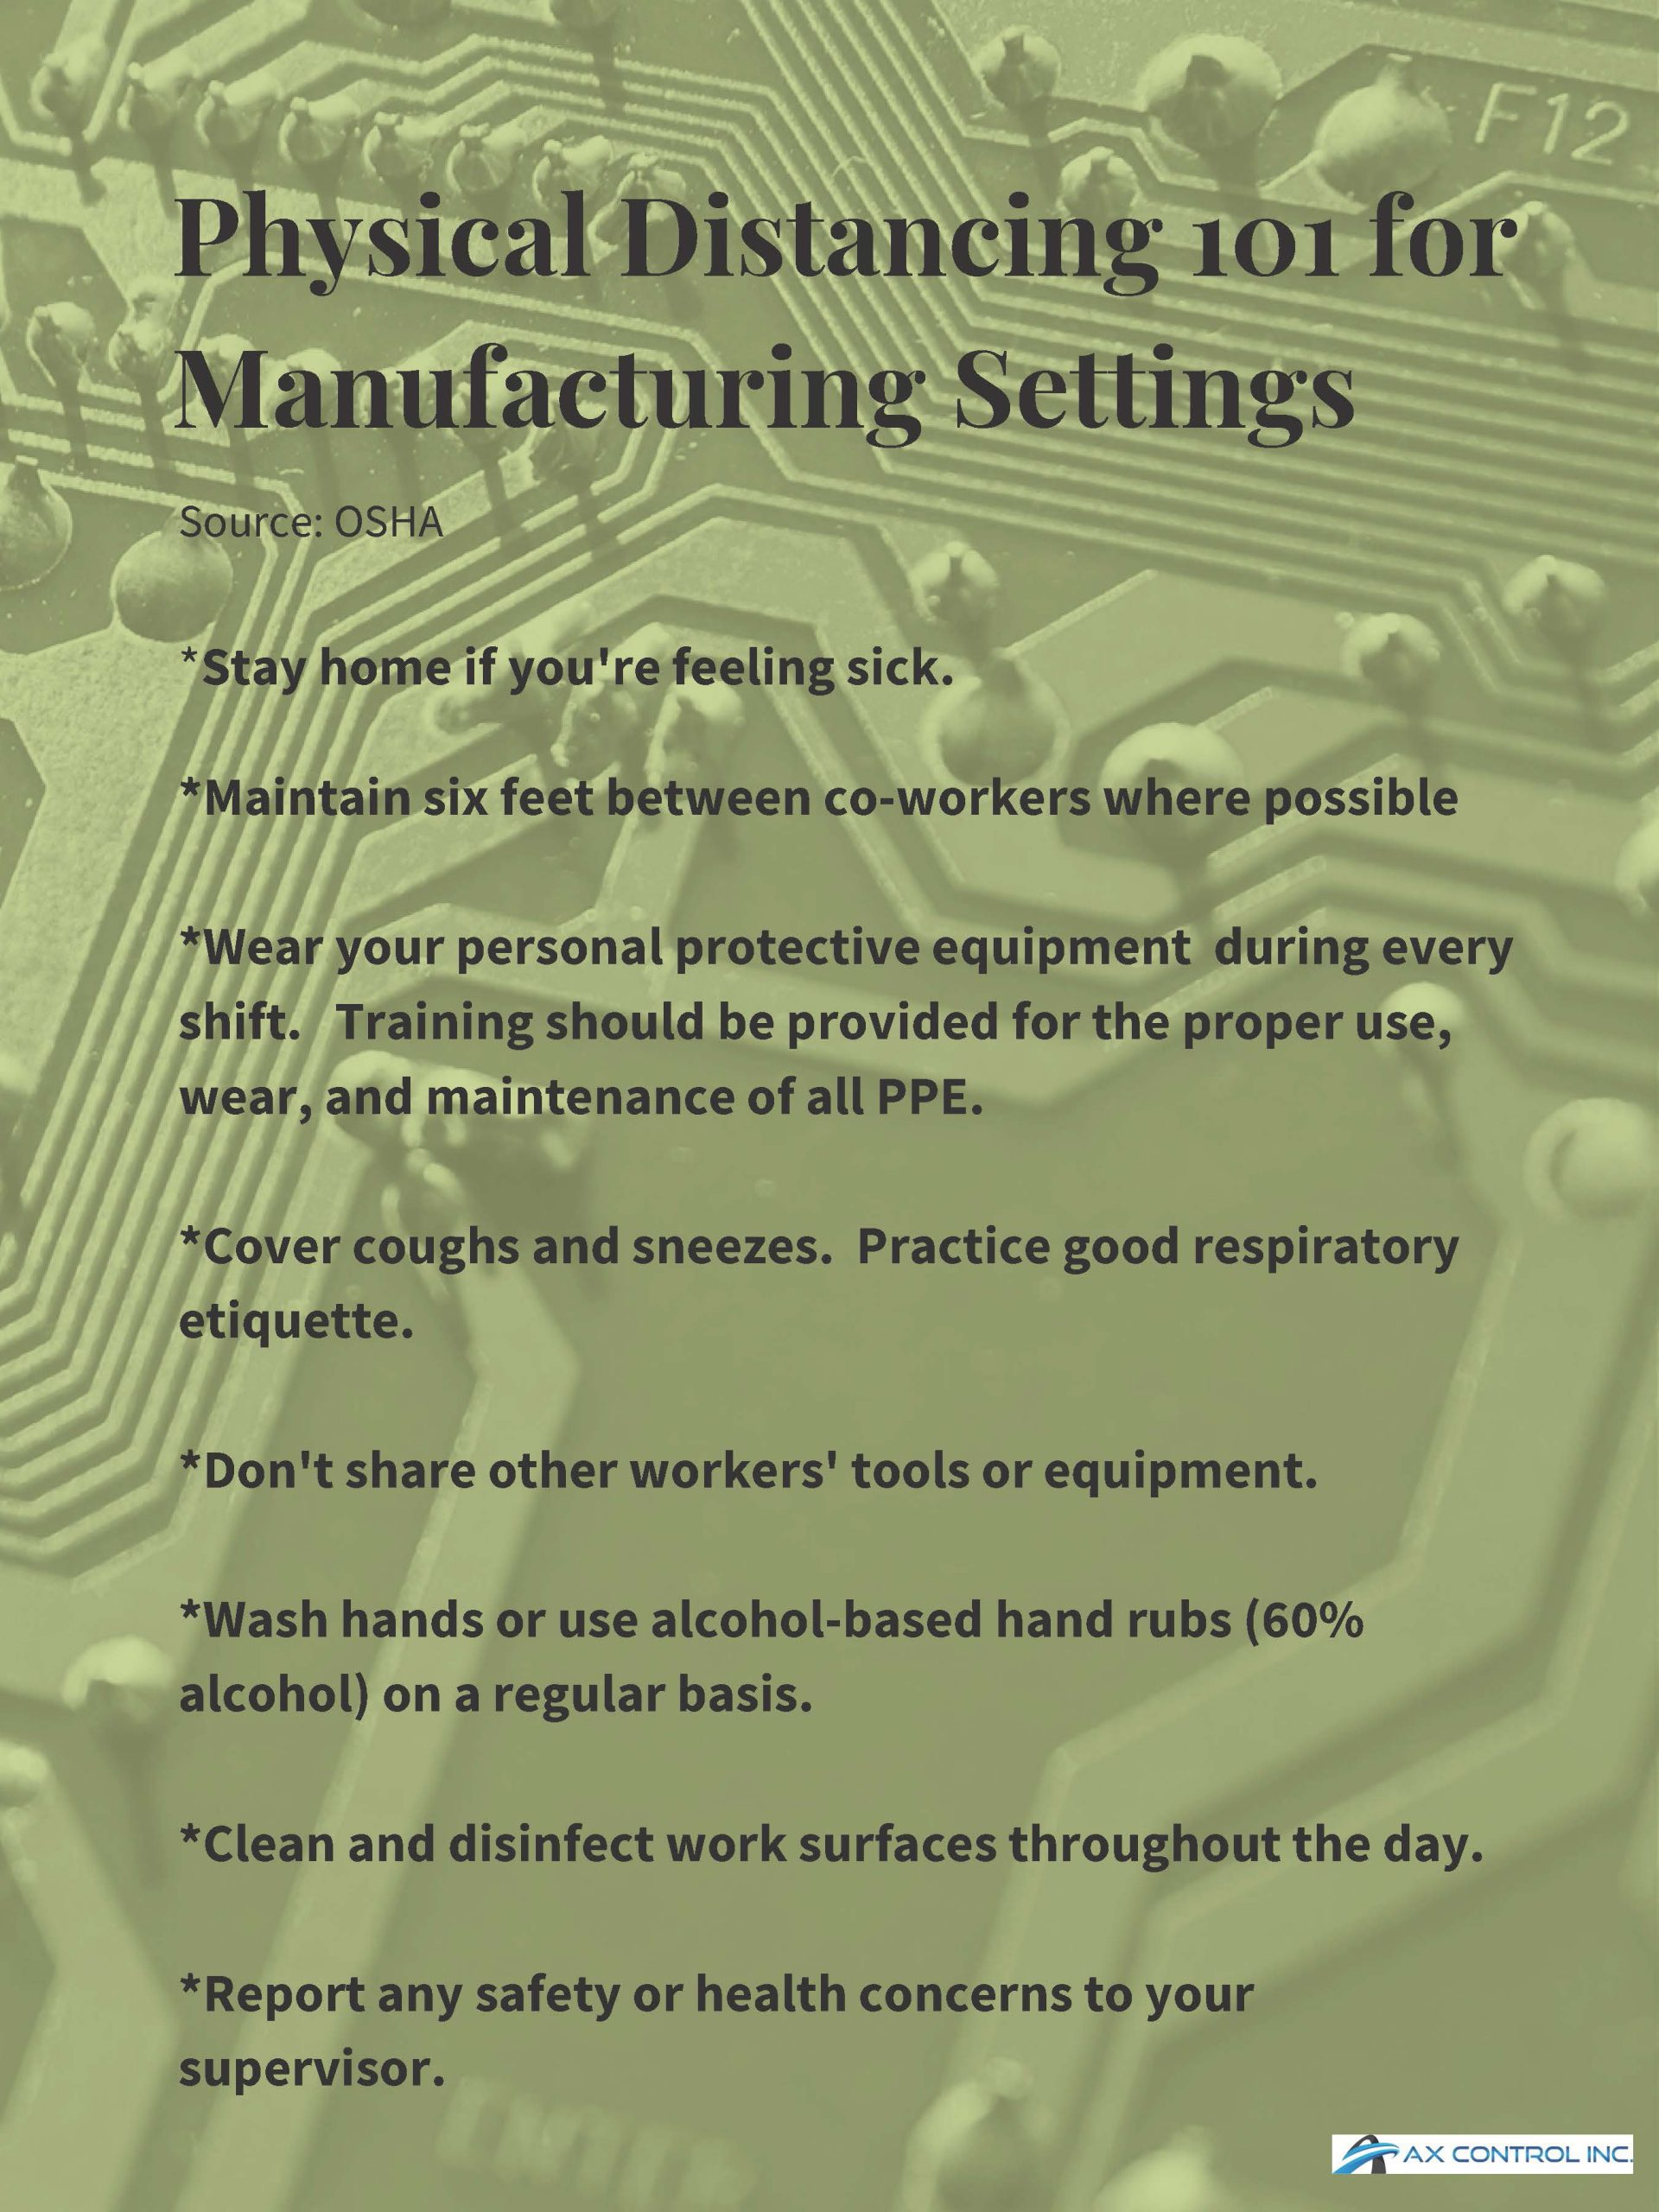 physical distancing for manufacturing